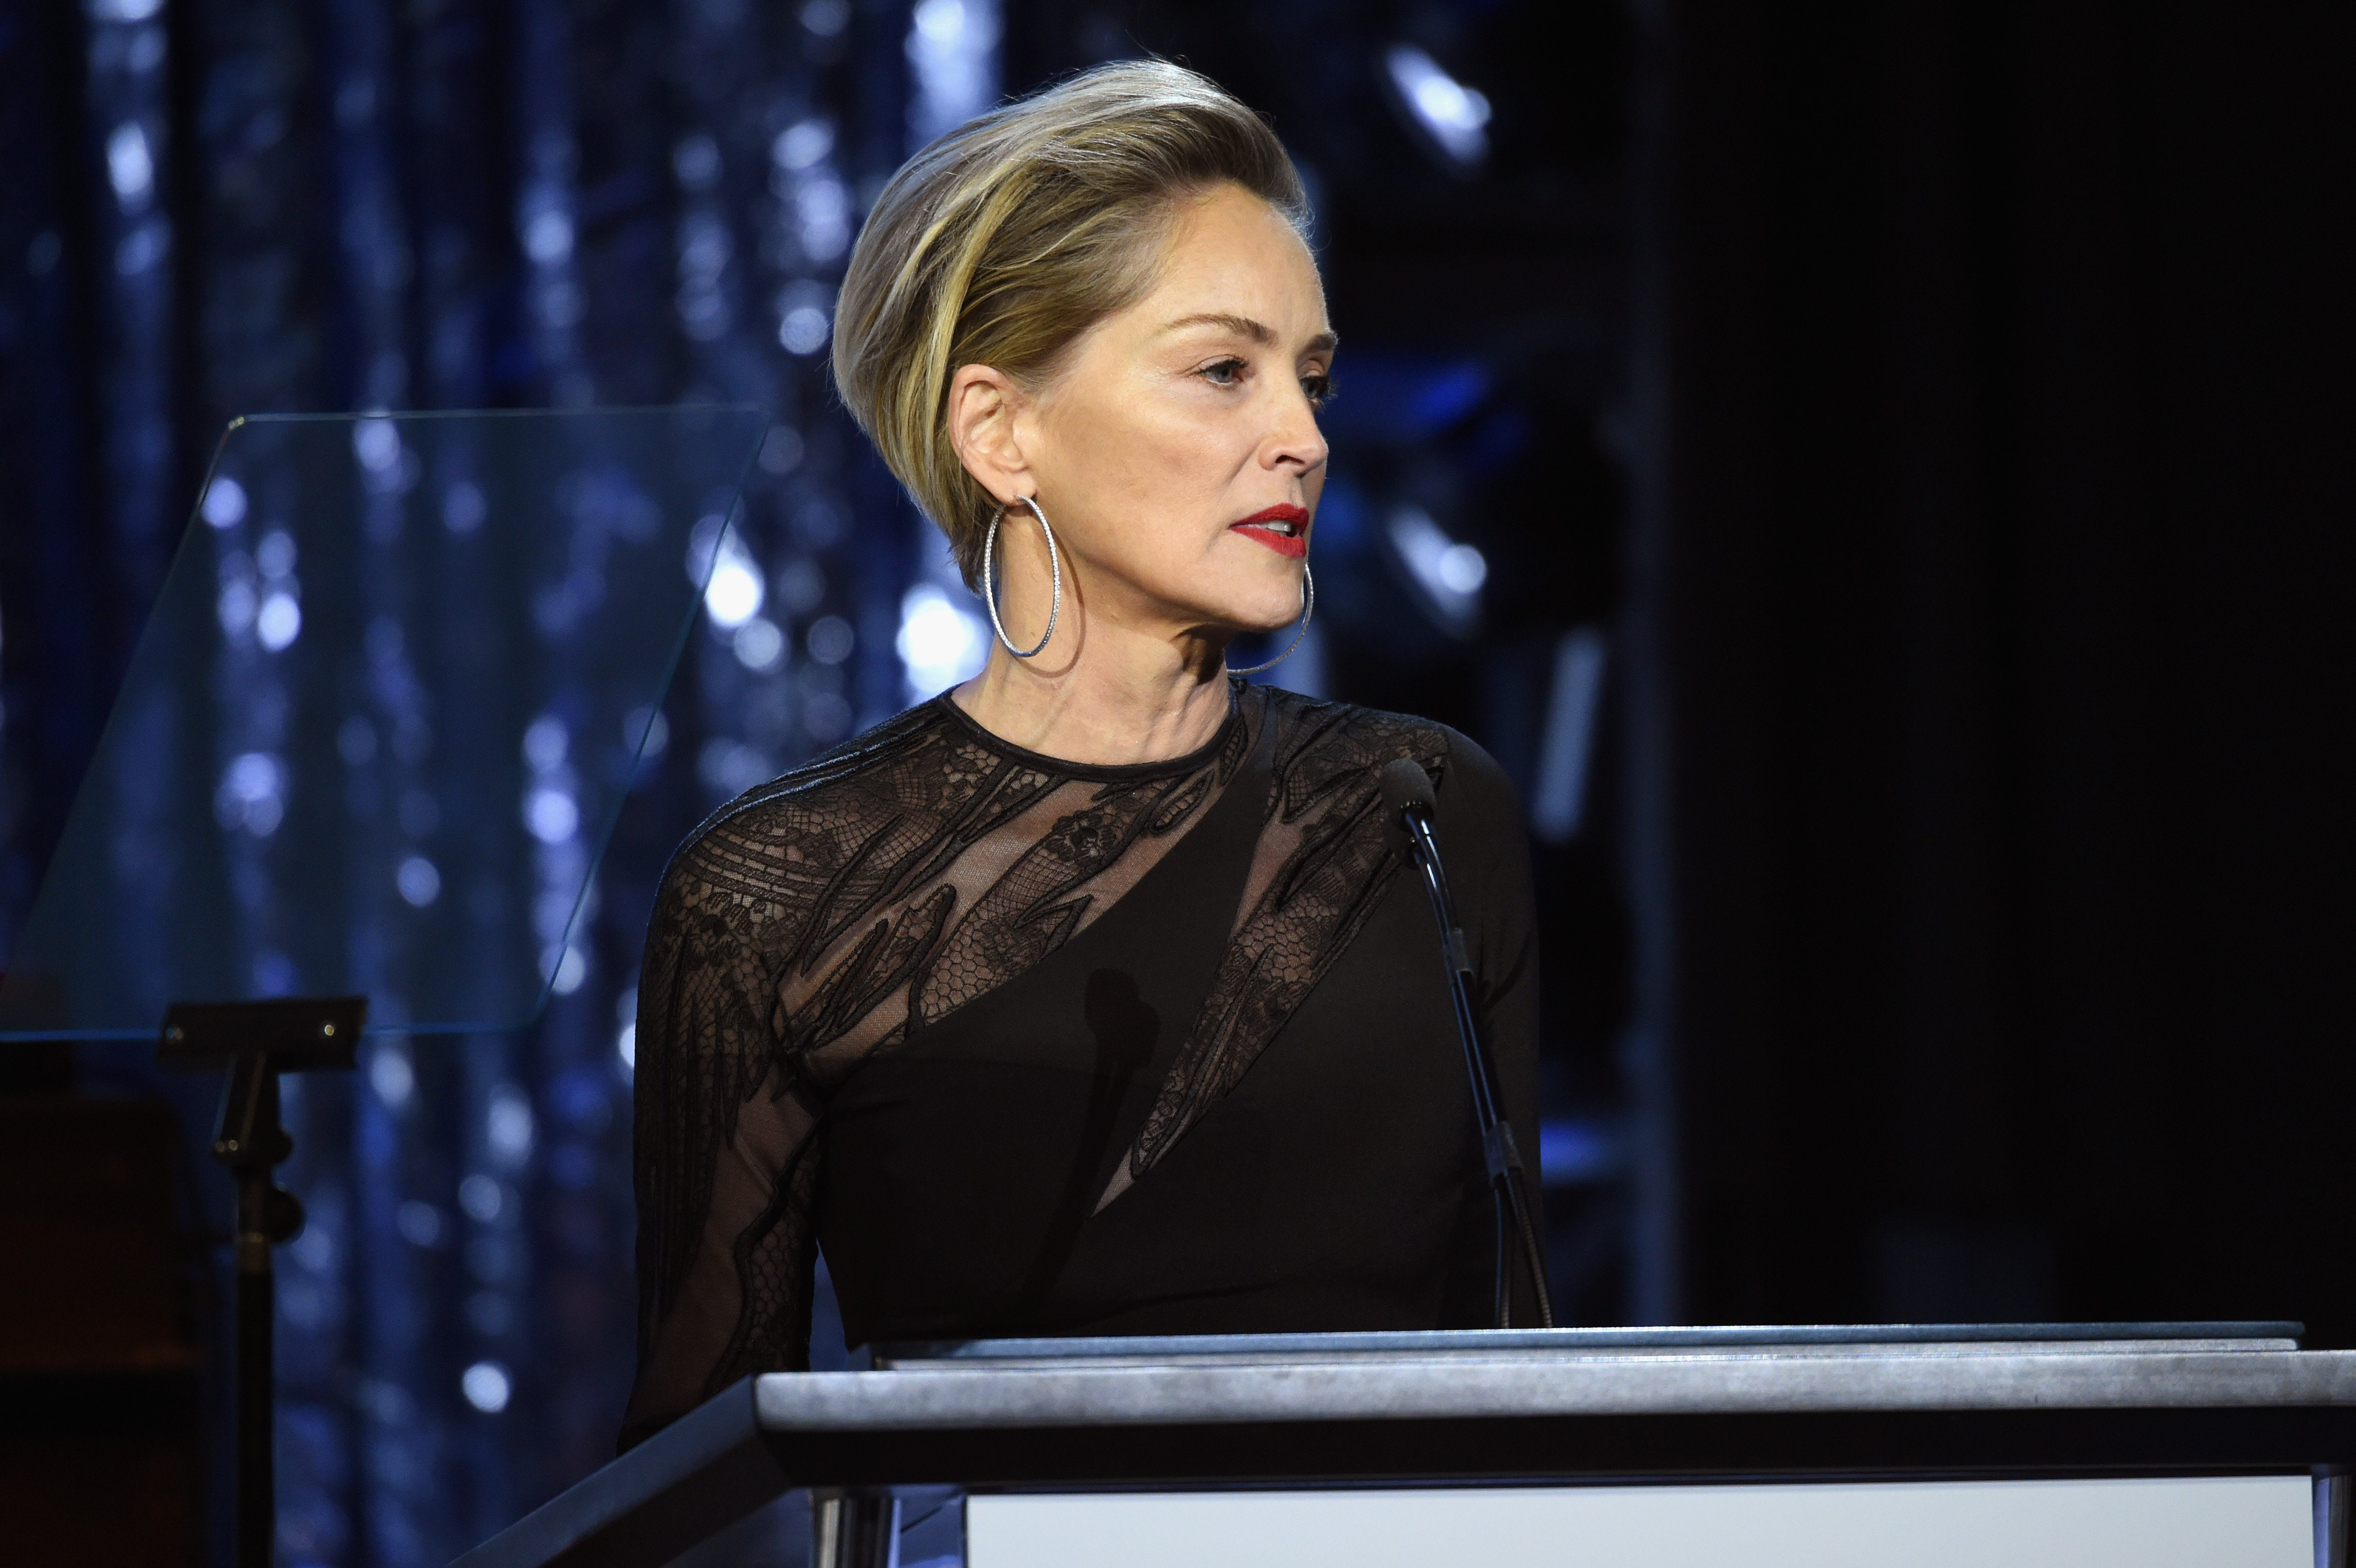 Actress Sharon Stone speaks onstage on the 25th Annual Elton John AIDS Foundation's Academy Awards Viewing Party at The City of West Hollywood Park on February 26, 2017 in West Hollywood, California | Photo: Getty Images